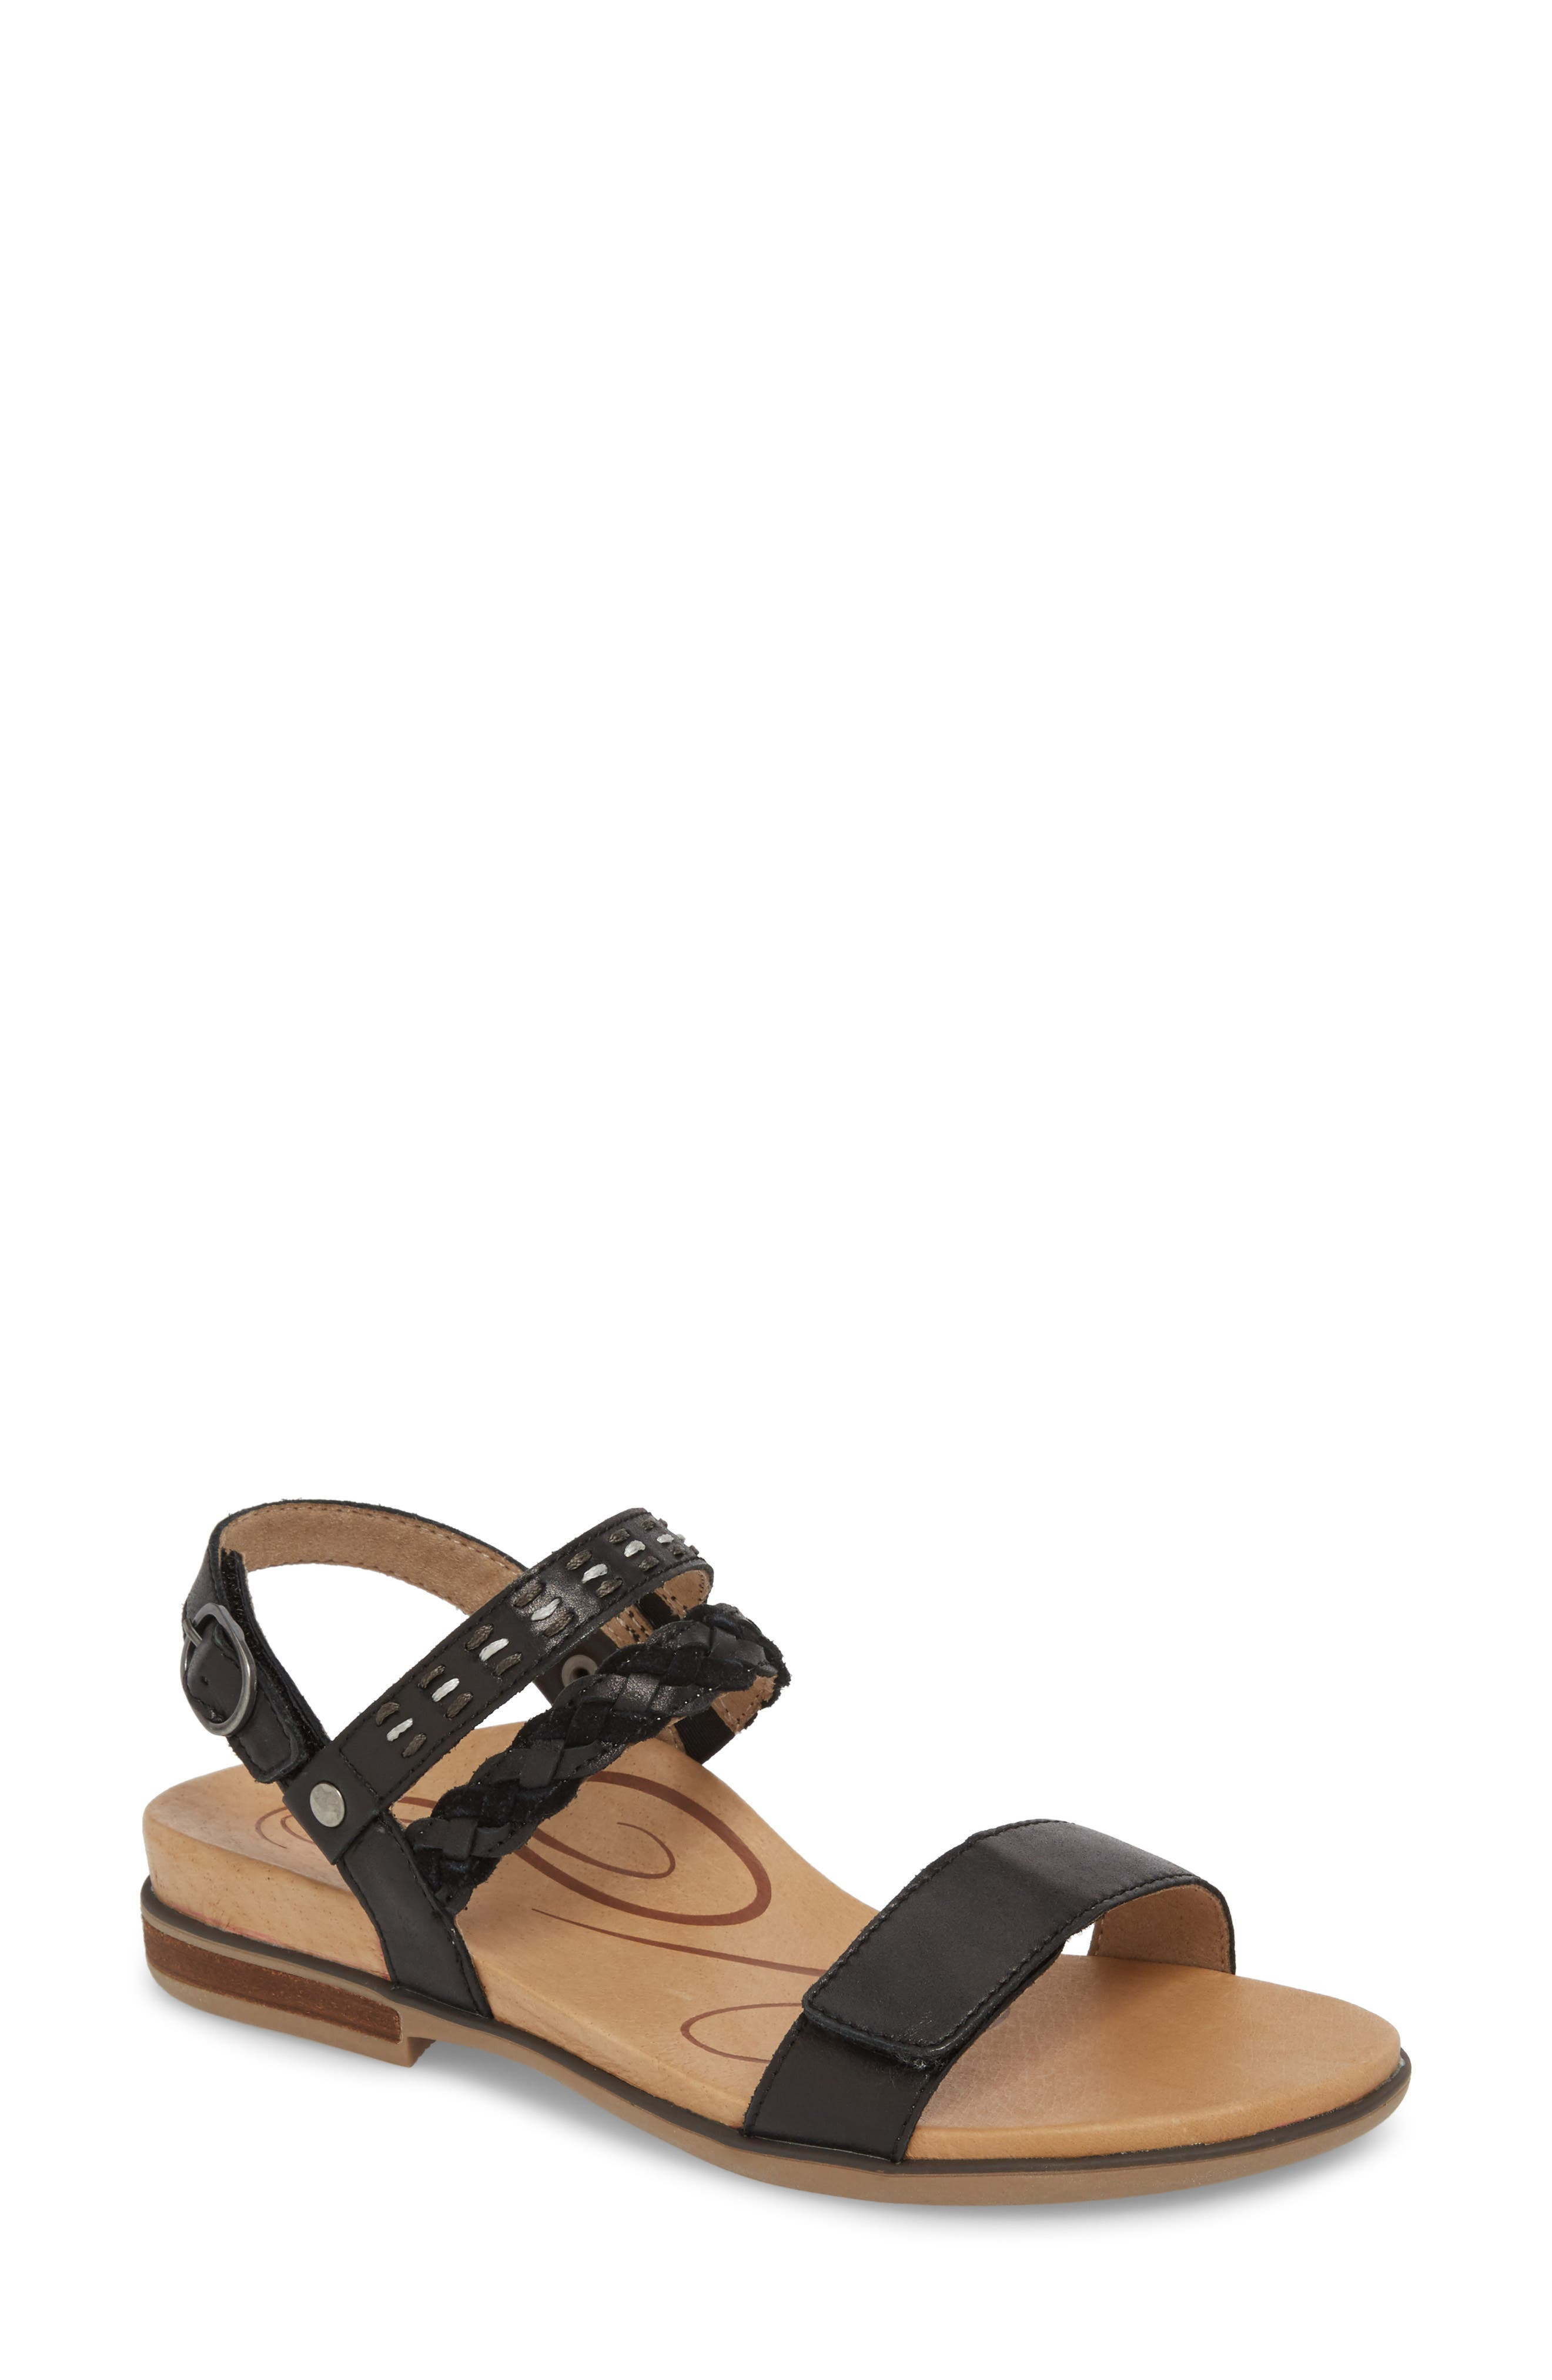 AETREX, Celeste Sandal, Main thumbnail 1, color, BLACK LEATHER